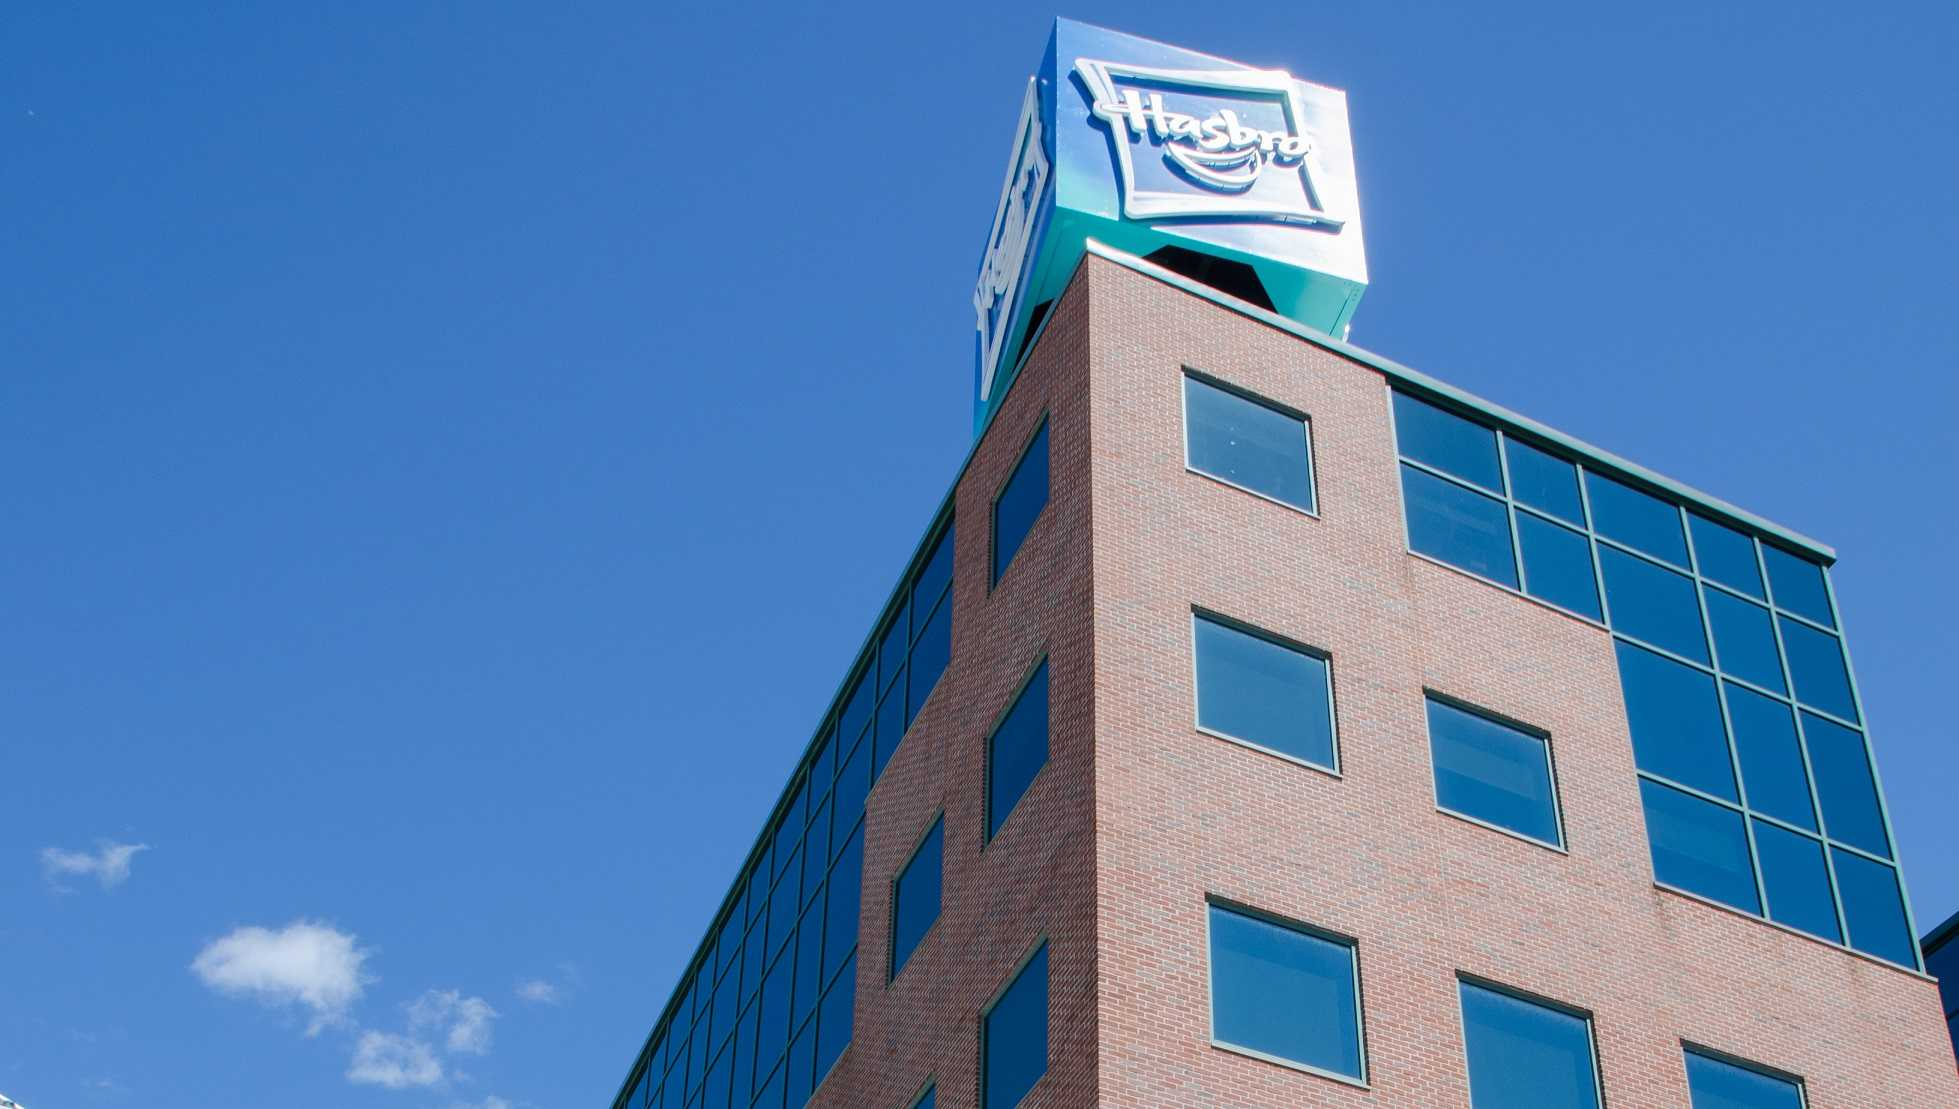 Hasbro headquarters in Providence, Rhode Island.